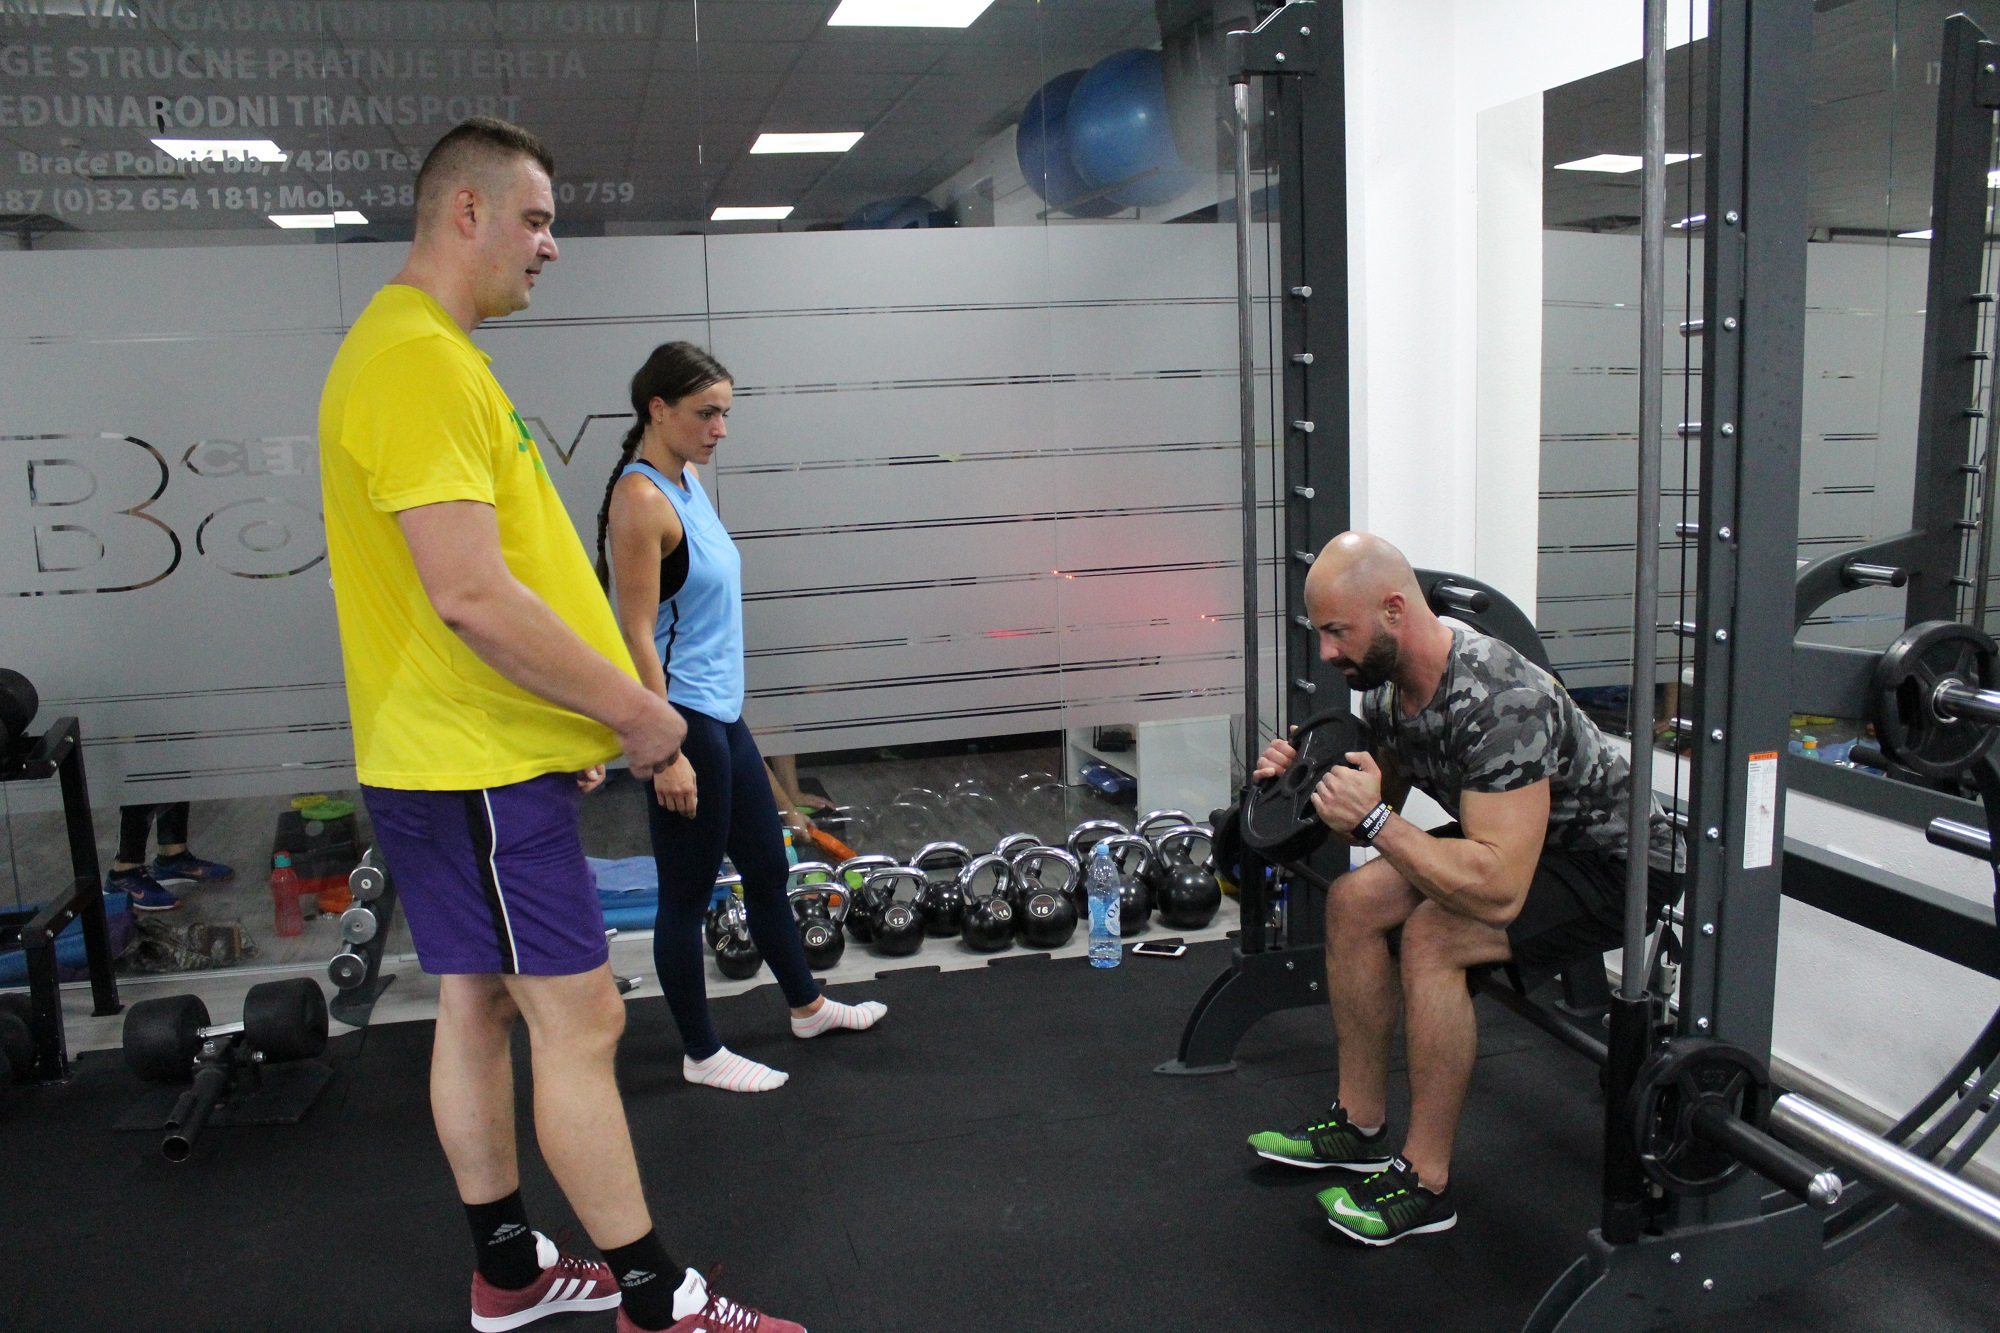 Small Group Personal Training - NOVO u našem Fitness Centru!